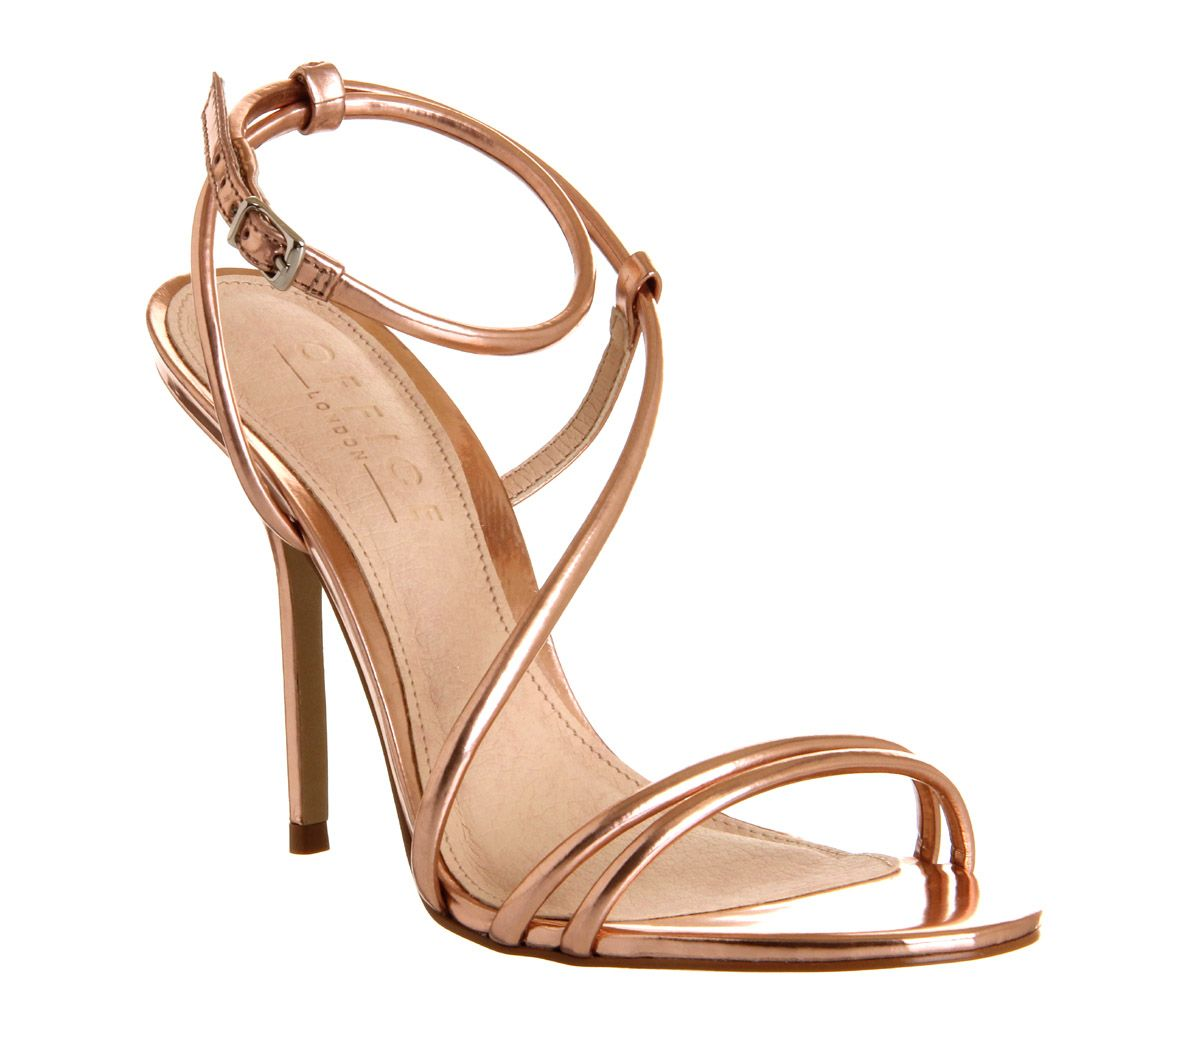 Details about Womens Office Jools Strappy Sandal ROSE GOLD Heels